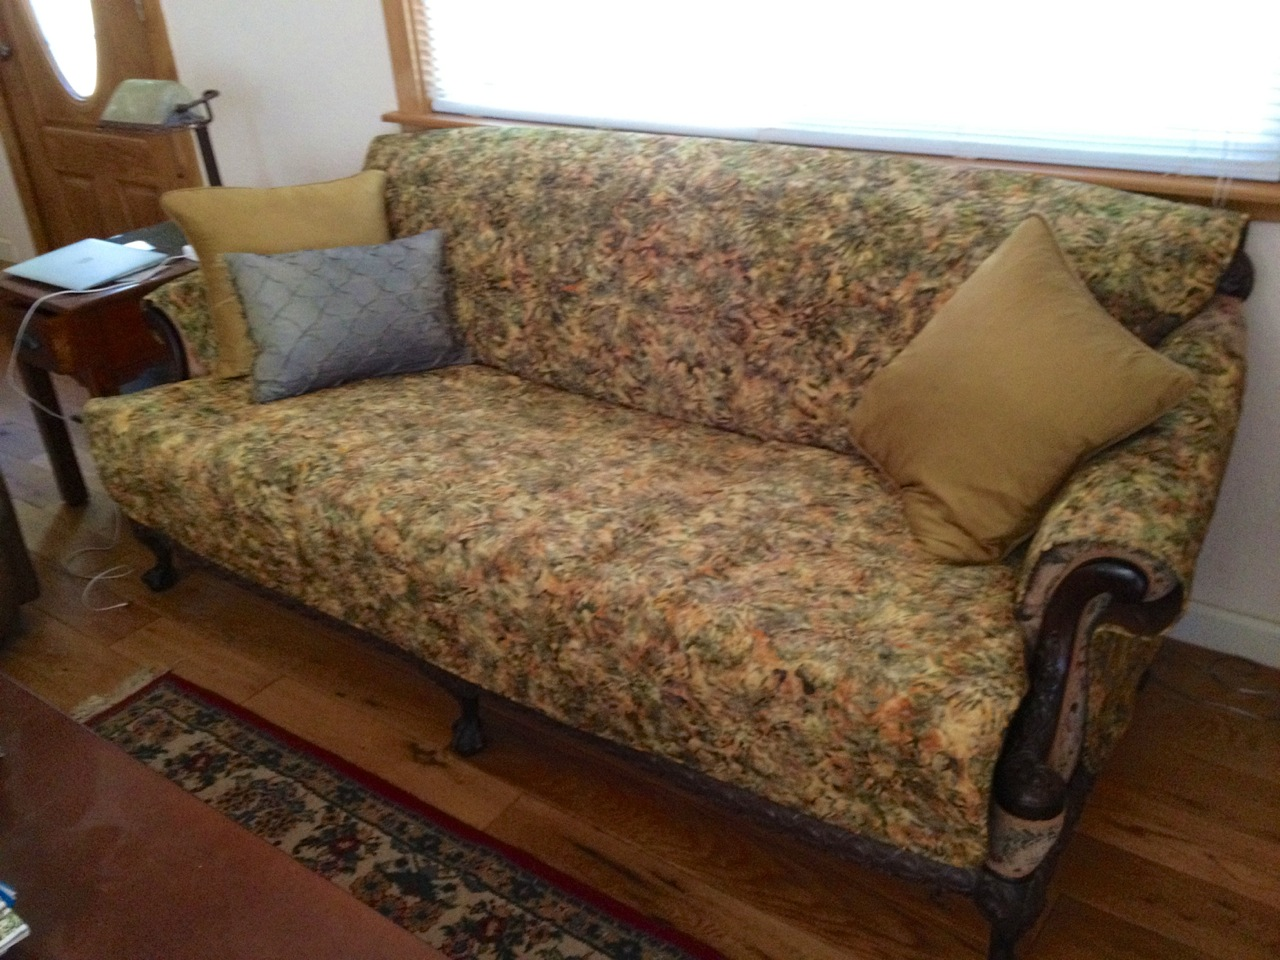 NickersMarie: Quilted Batik Couch And Chair Covers